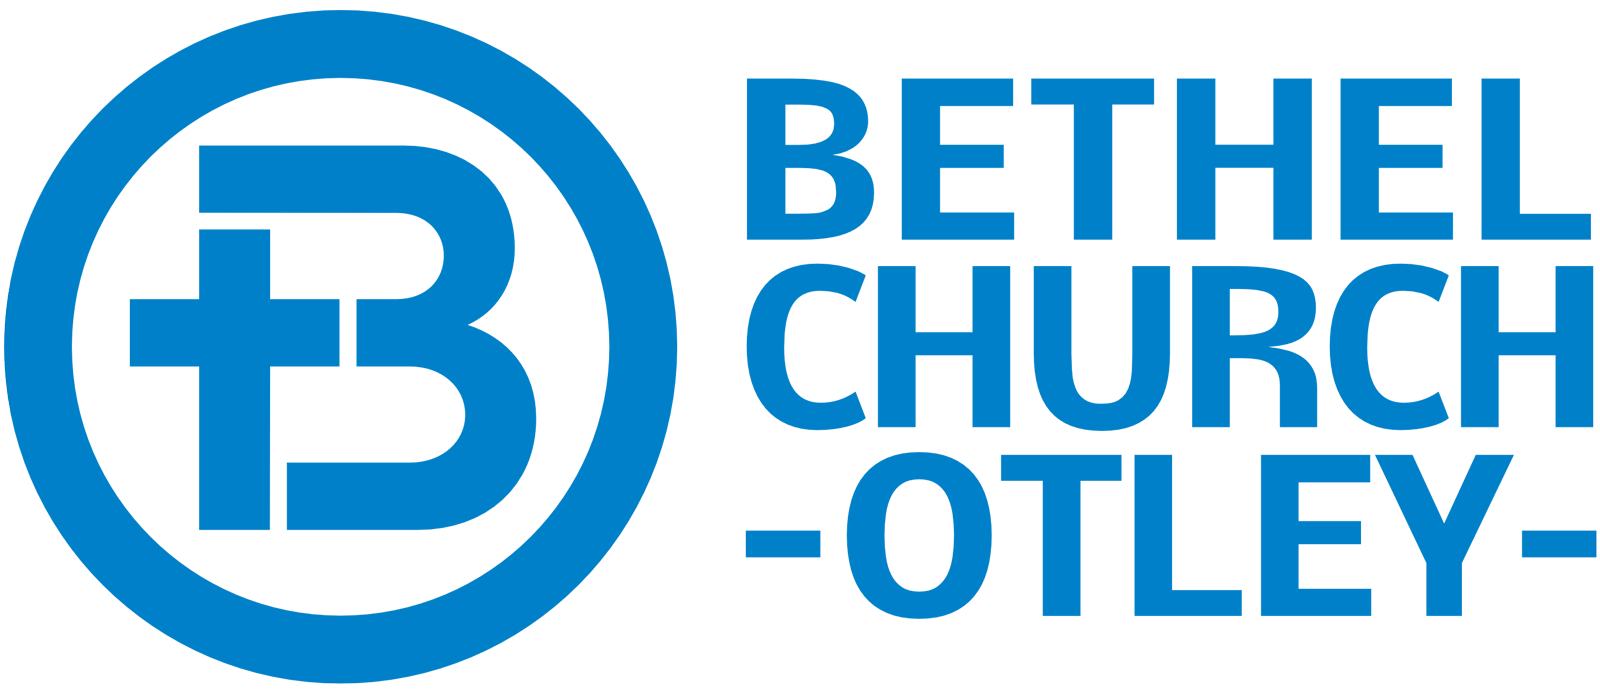 Bethel Church, Otley